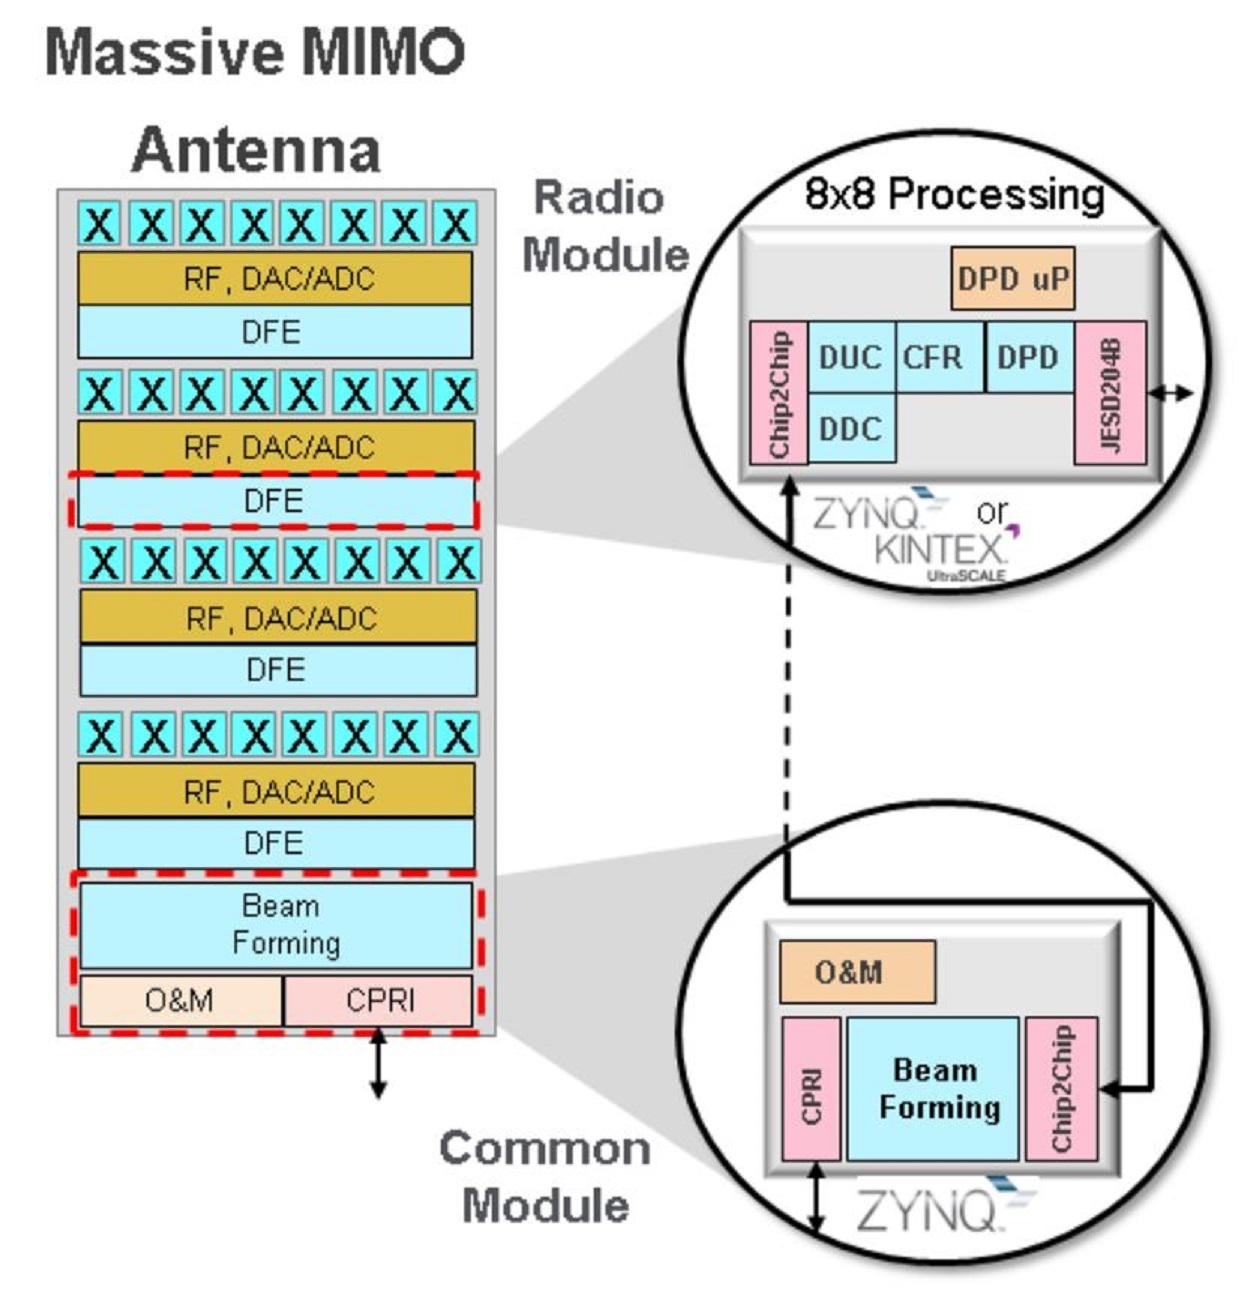 5G teams need FPGAs for massive MIMO research